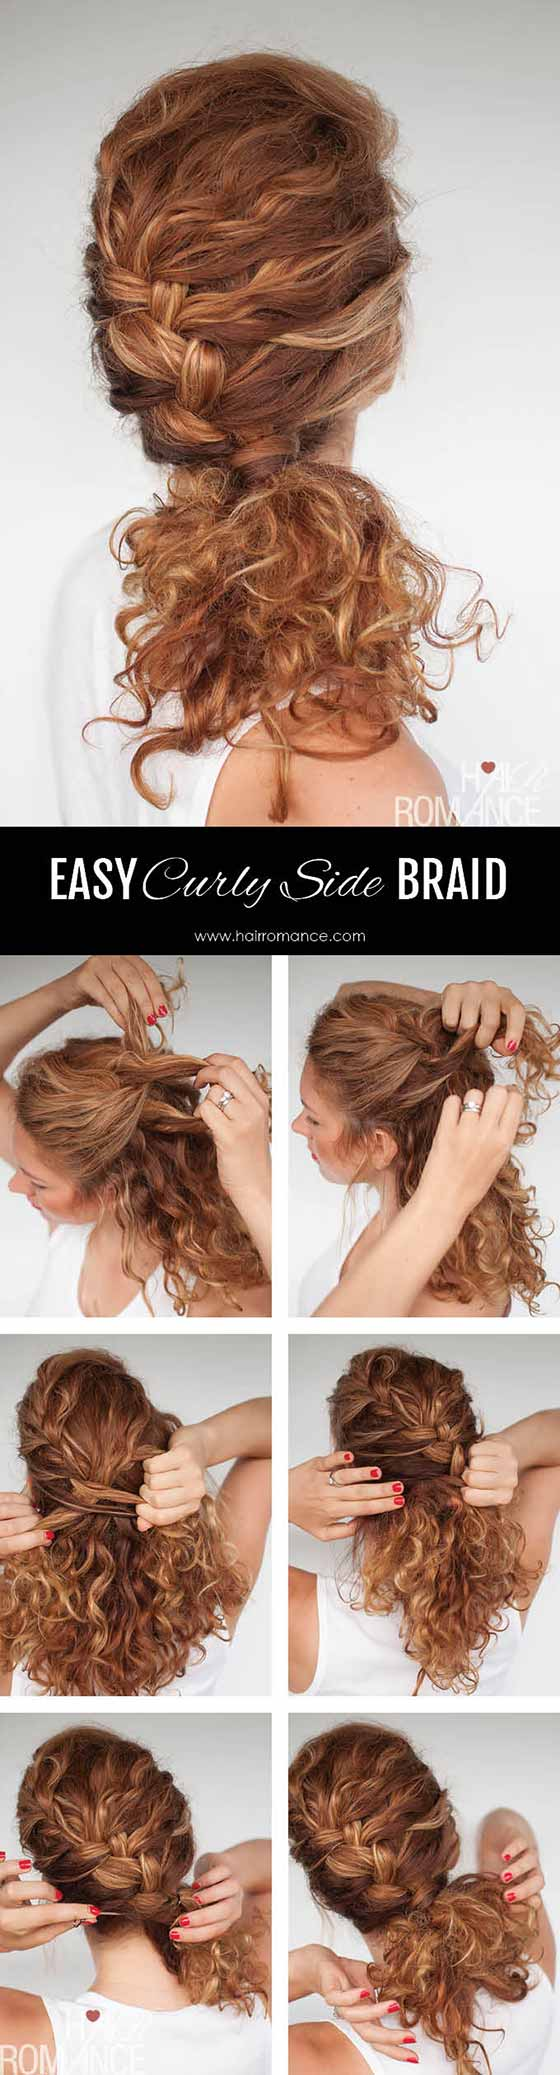 Easy Curly Side Braid